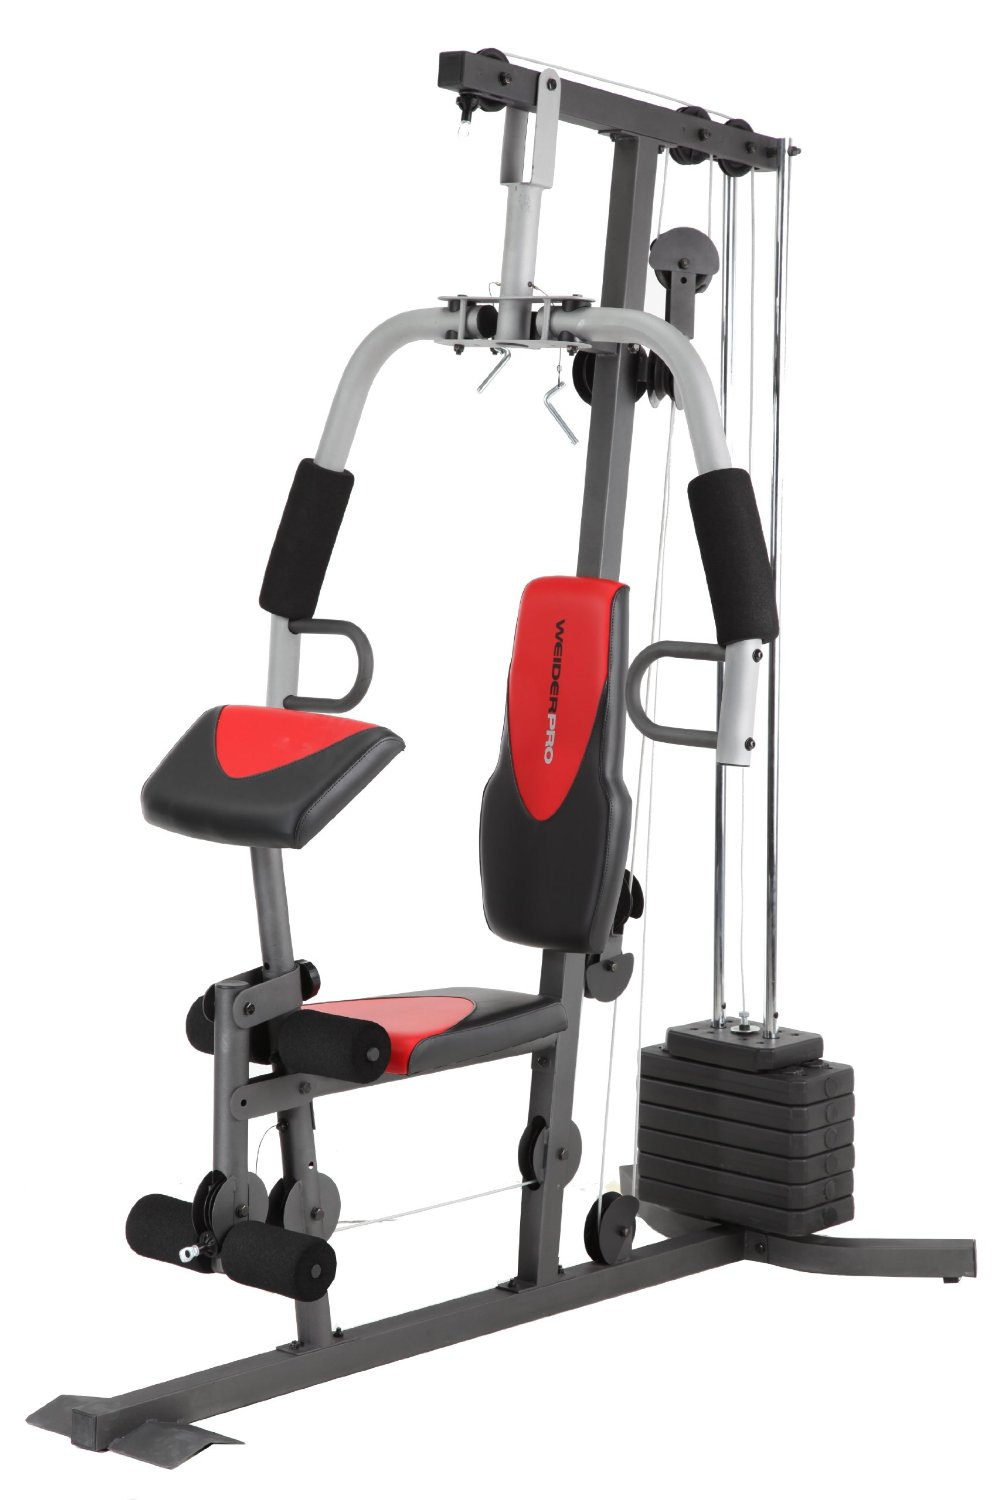 Weider Home Gym Reviews 2018